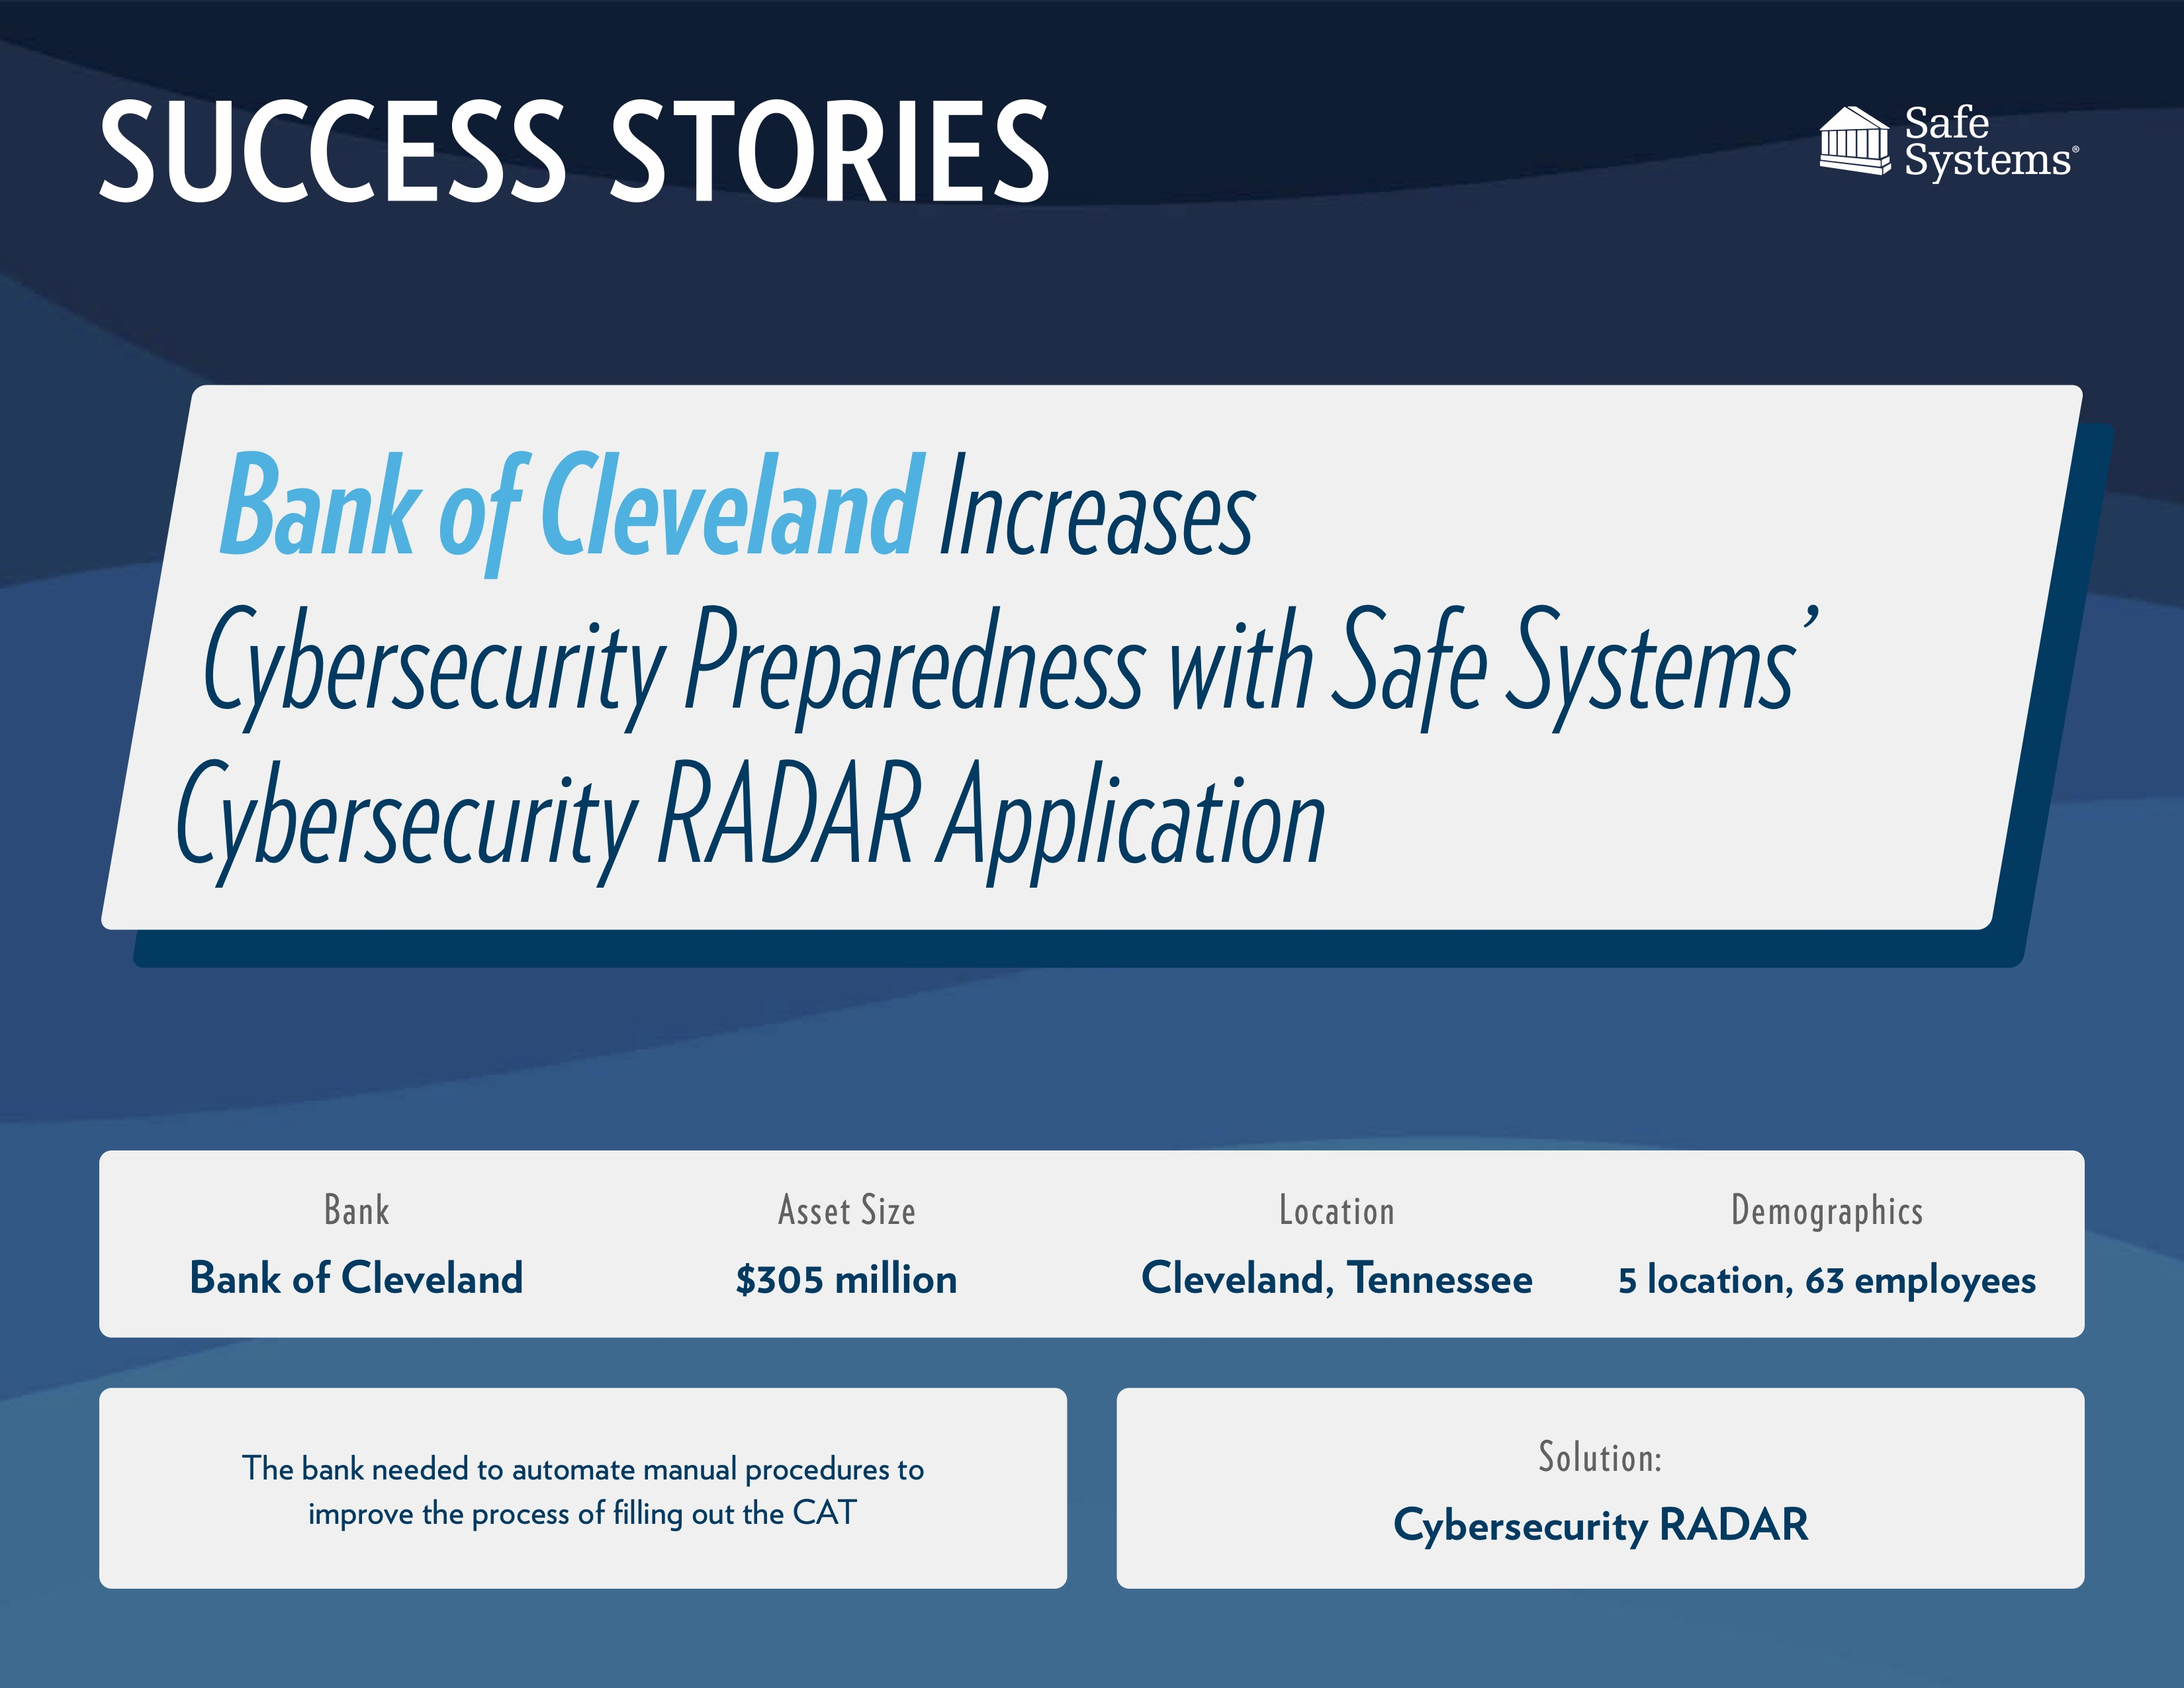 Bank of Cleveland Increases Cybersecurity Preparedness with Safe Systems Cybersecurity RADAR Application